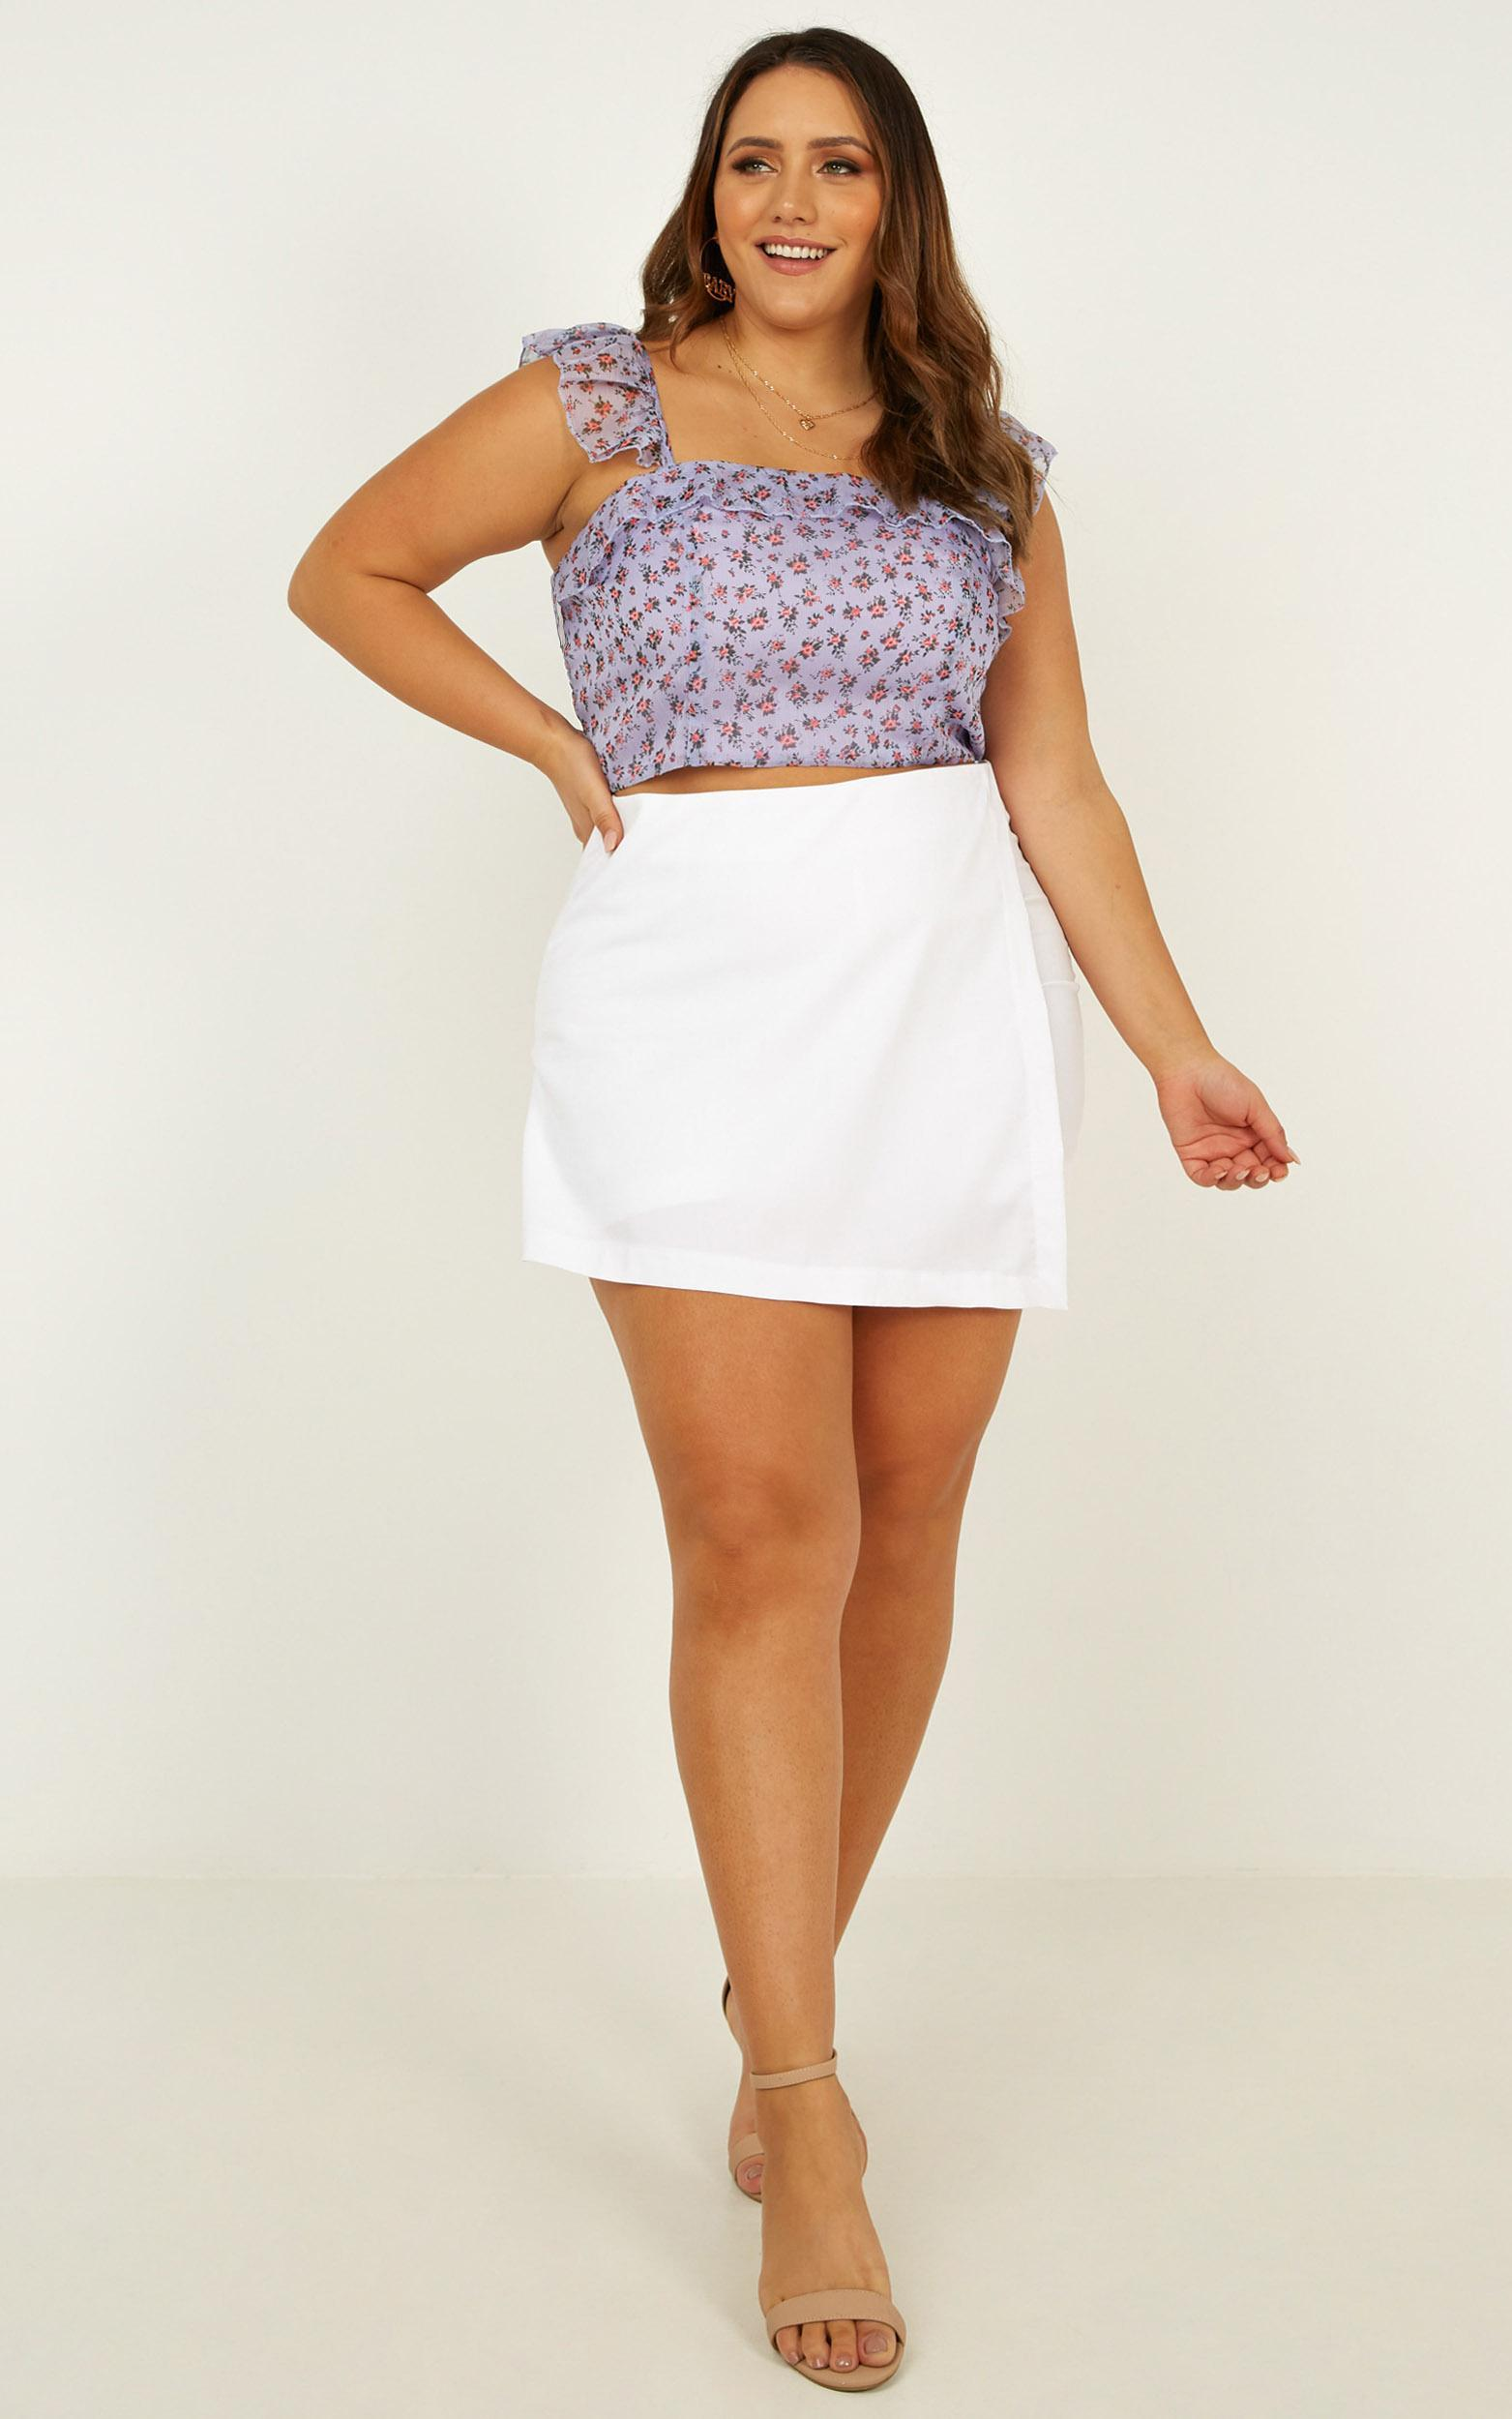 Sun Kisses Top In lilac floral - 16 (XXL), Purple, hi-res image number null